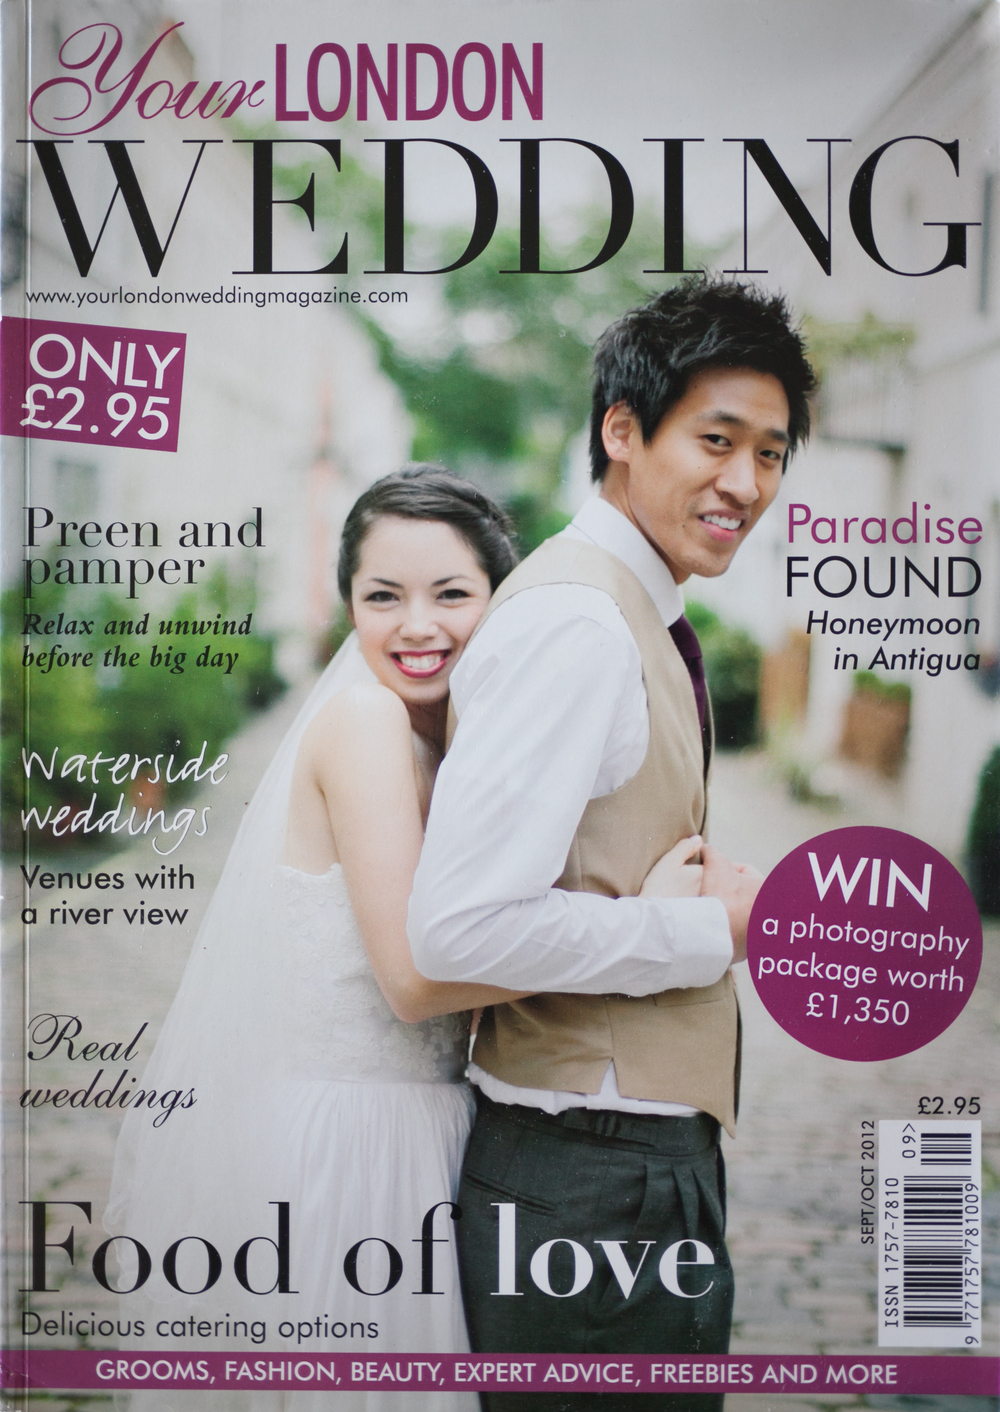 Your London Wedding UK Cover Image October 2012